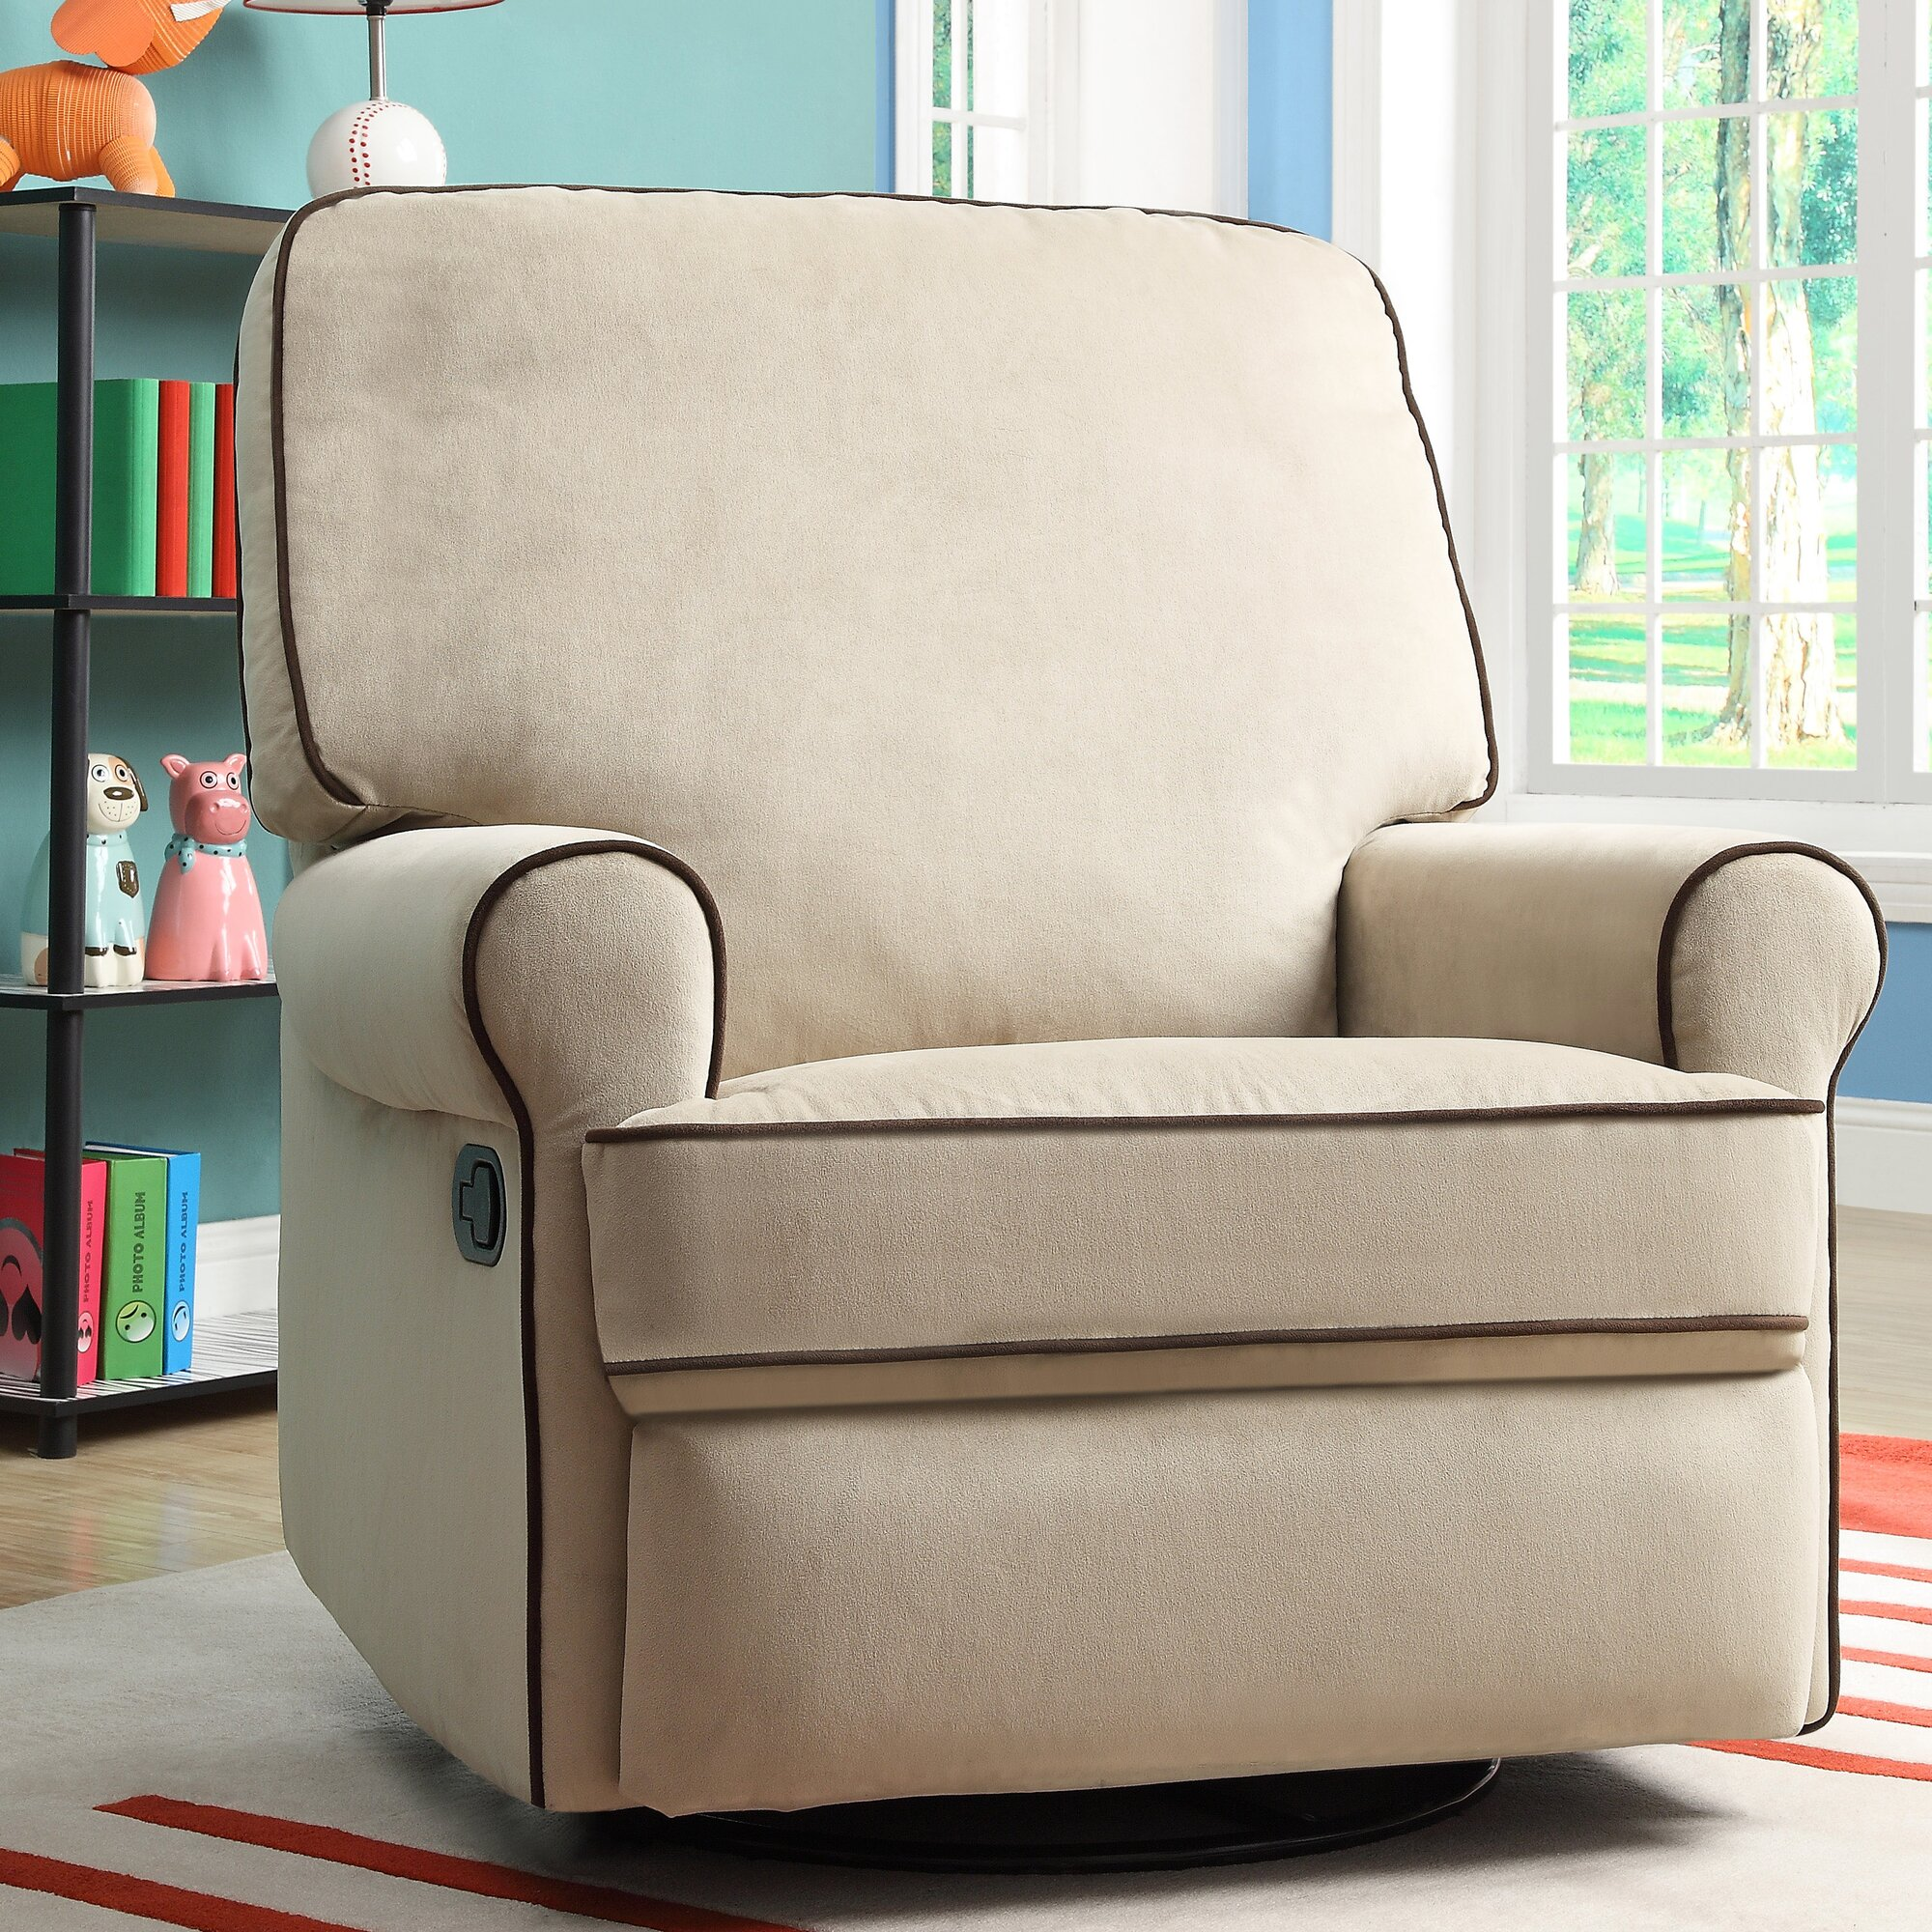 tarik swivel reclining glider - Swivel Recliner Chairs For Living Room